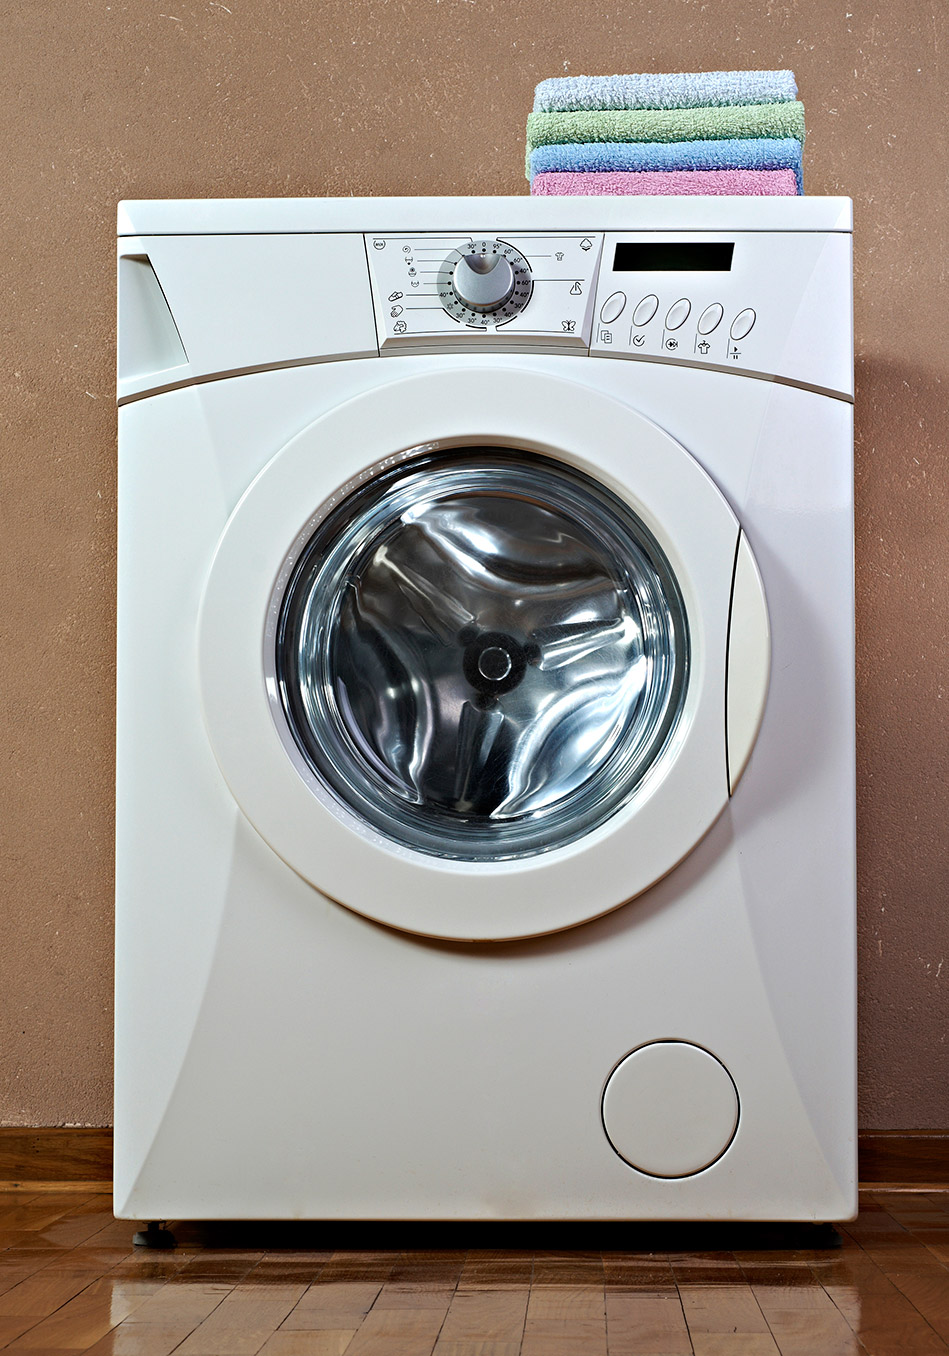 Clothes Washing Machine ~ How to wash clothes correctly laundry tips